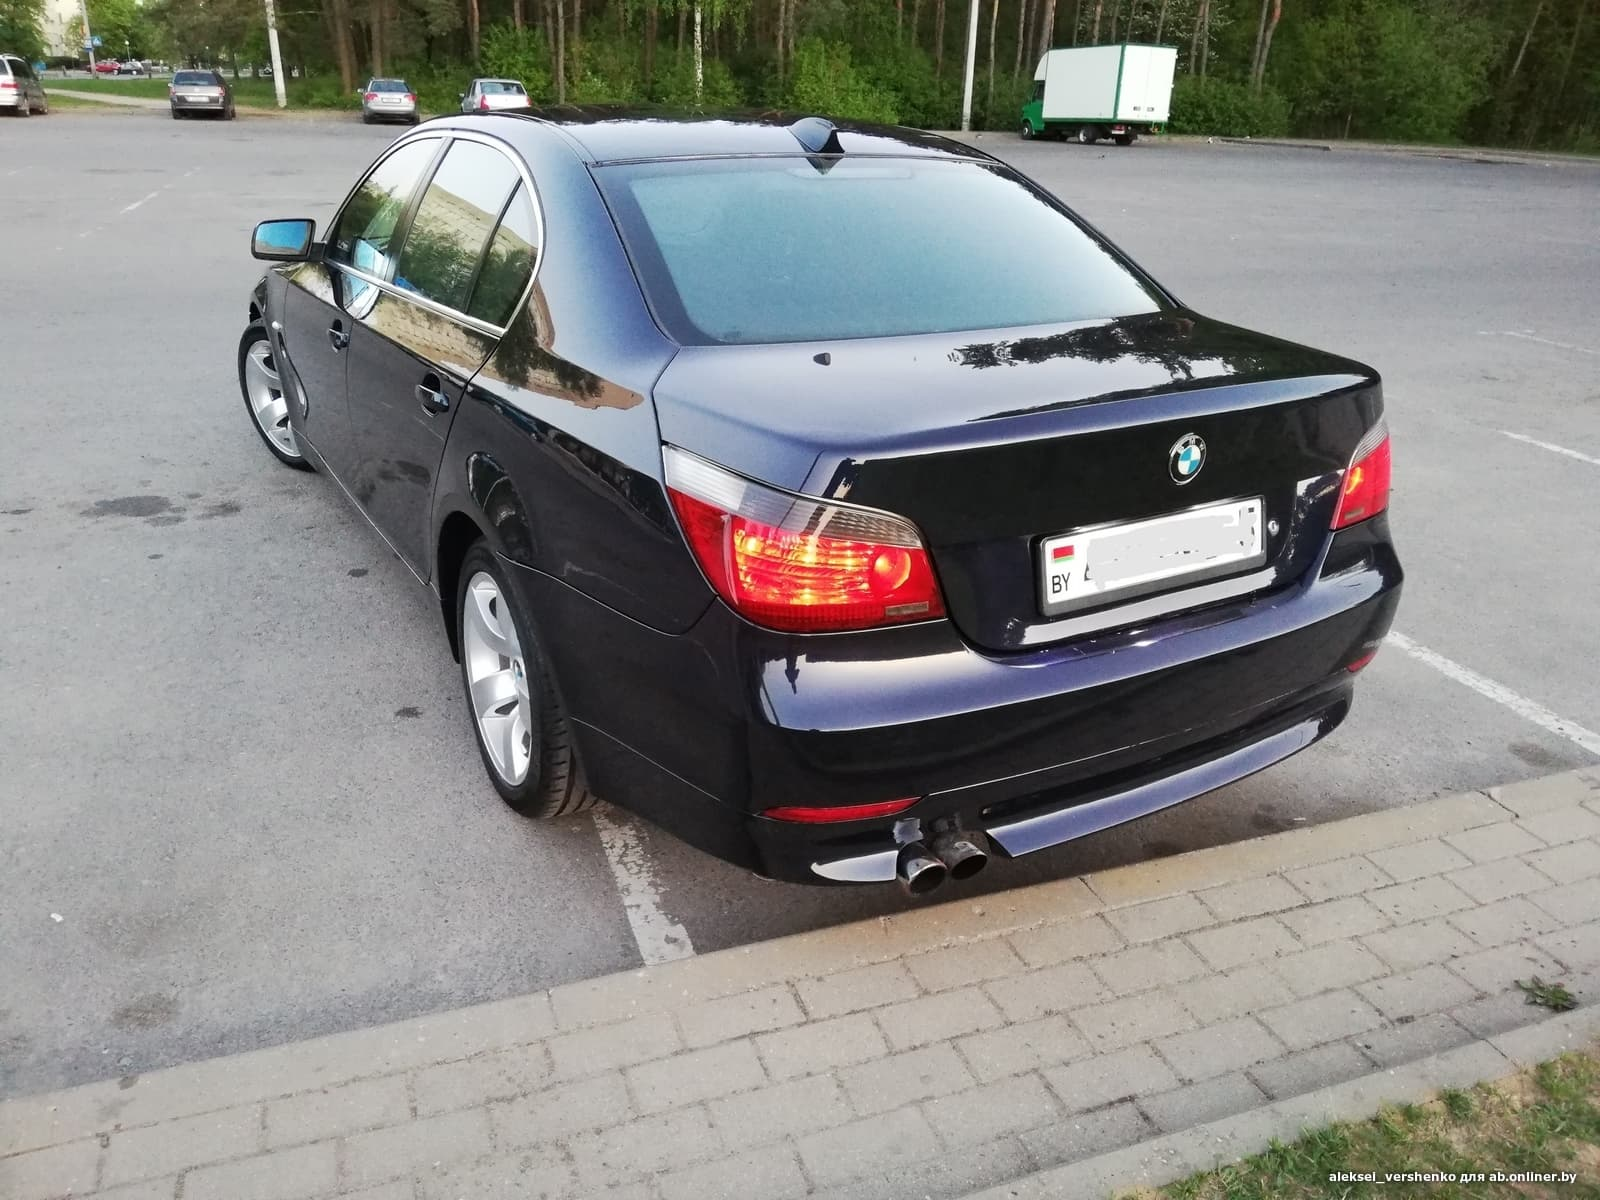 BMW 535 Bi-turbo